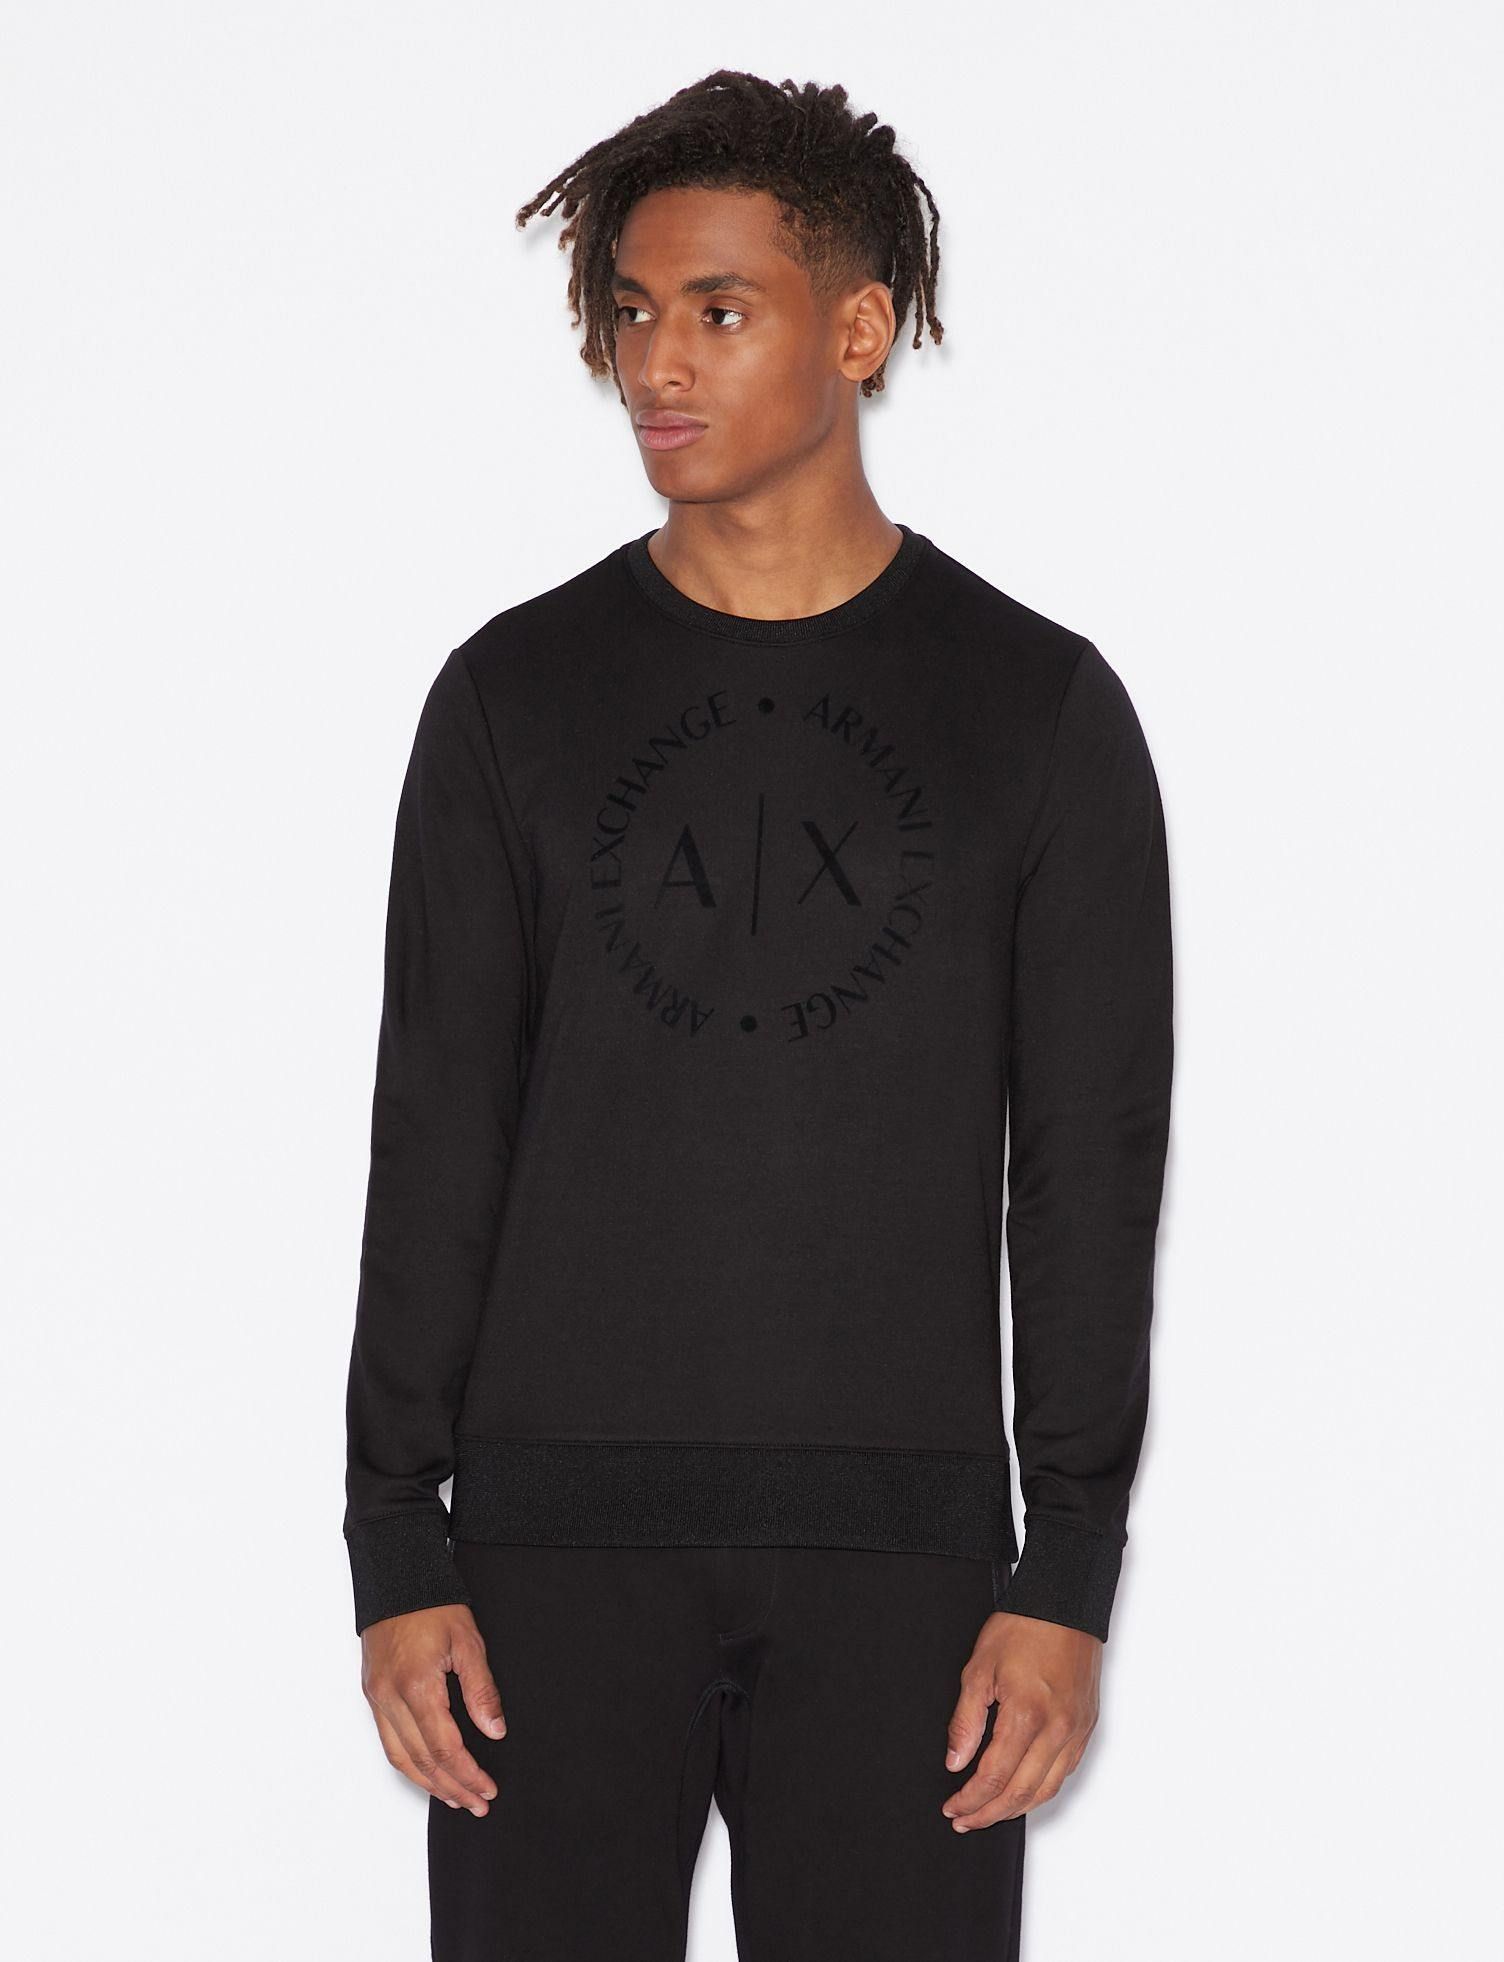 Armani Exchange - Sweater - Black - Stijl Alkmaar